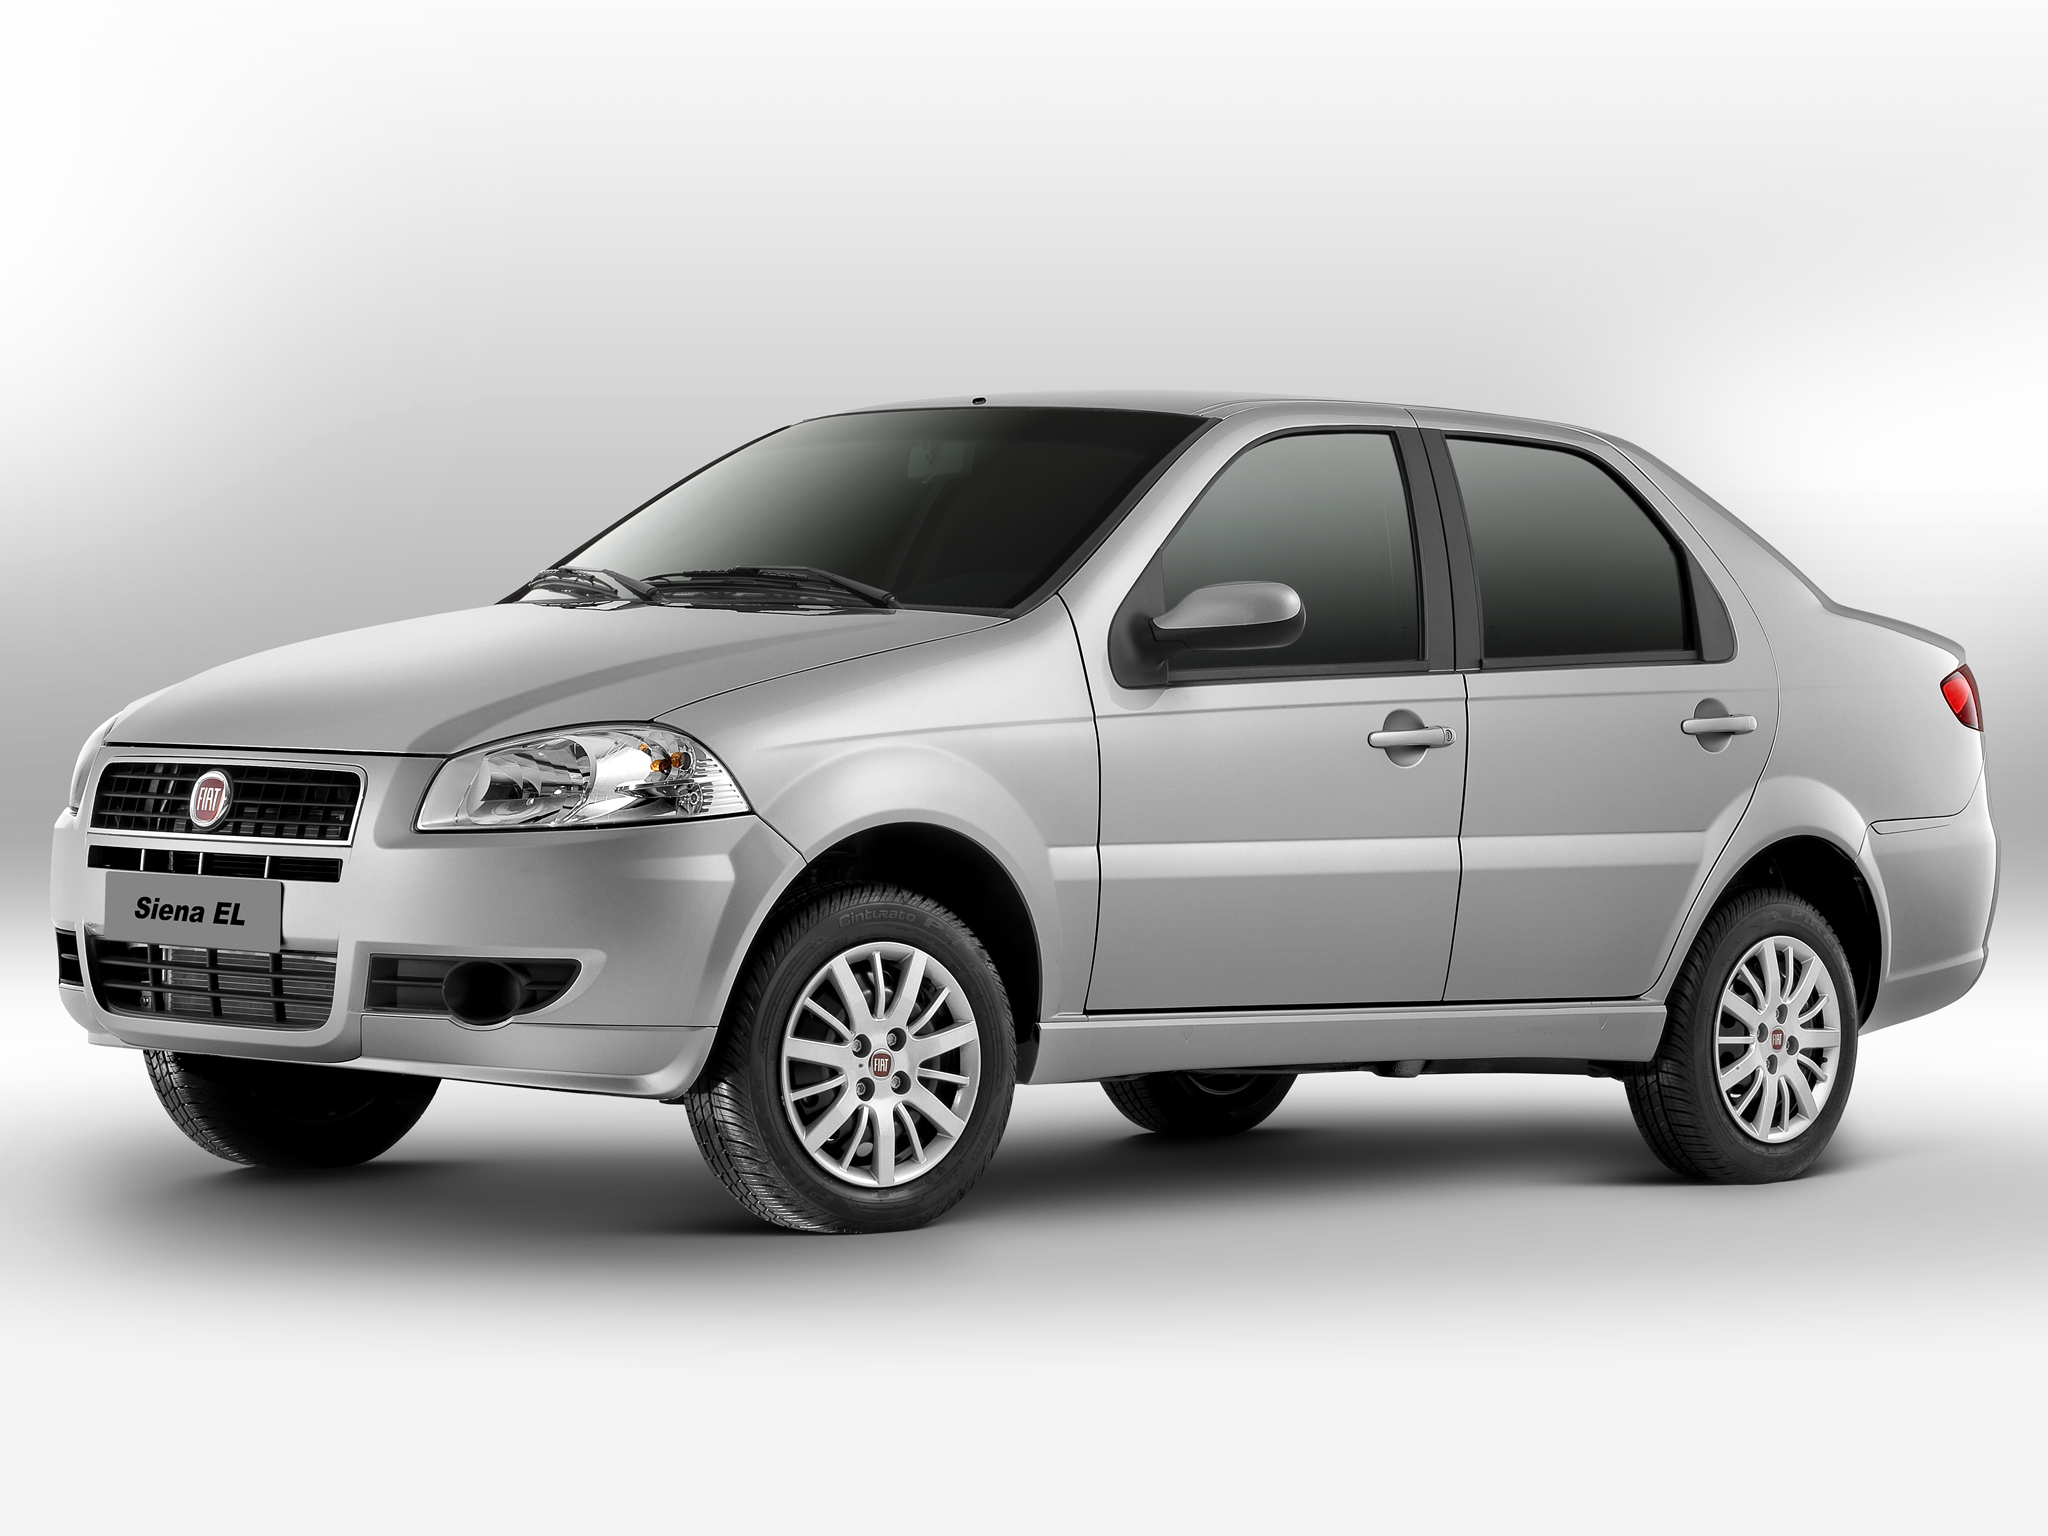 Fiat Siena Photos Photogallery With 3 Pics Carsbase Com